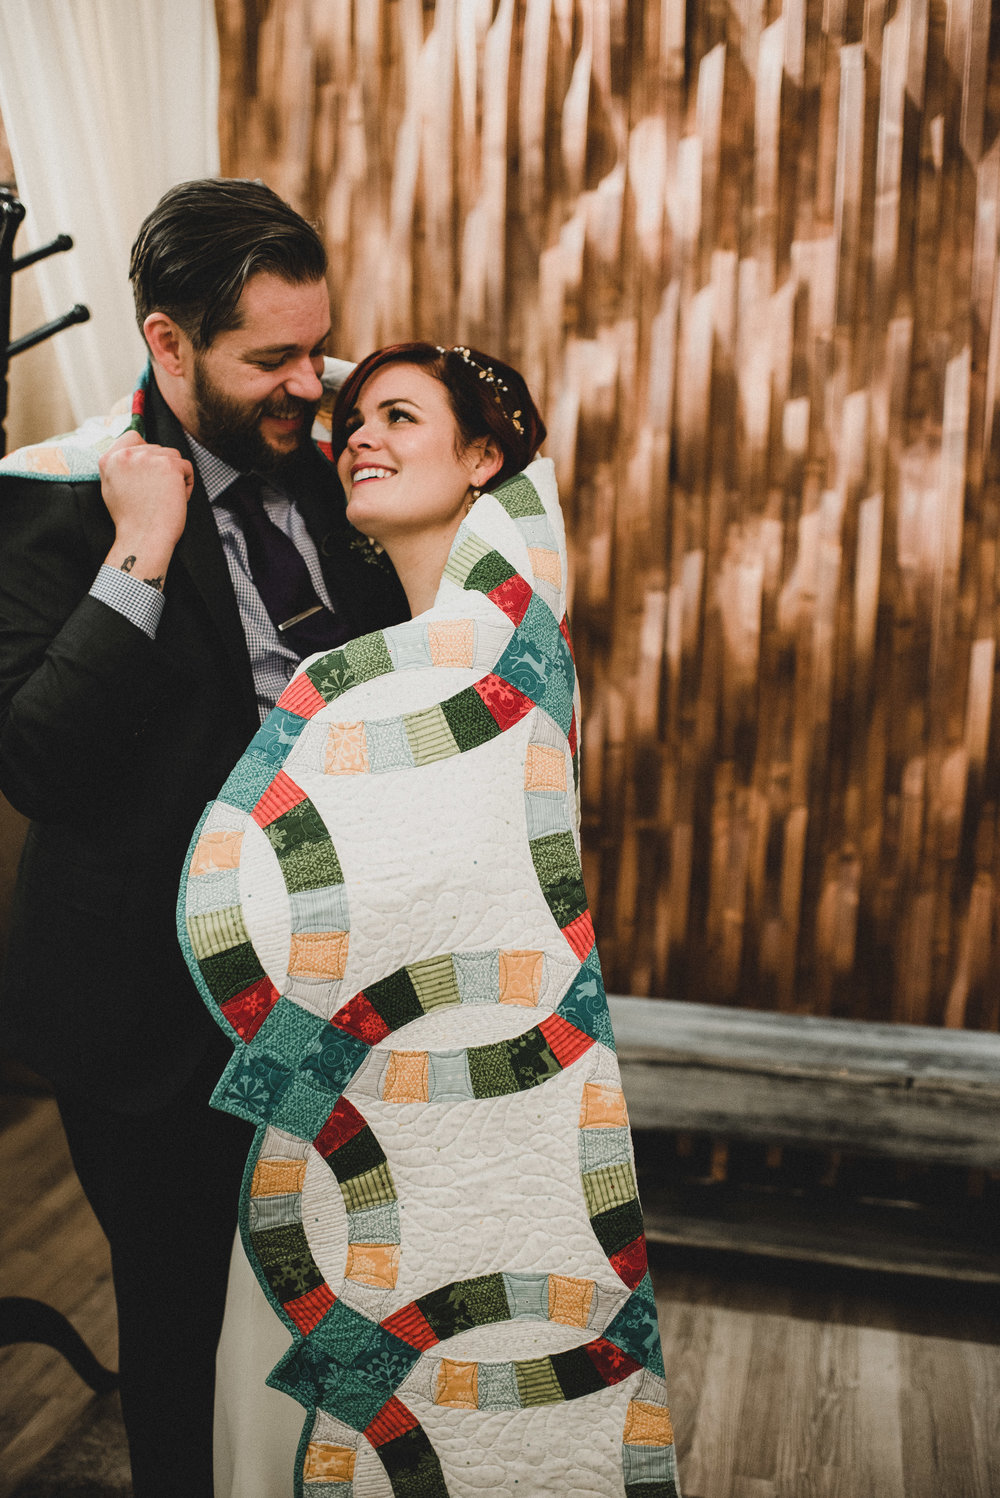 Newlywed Quilt